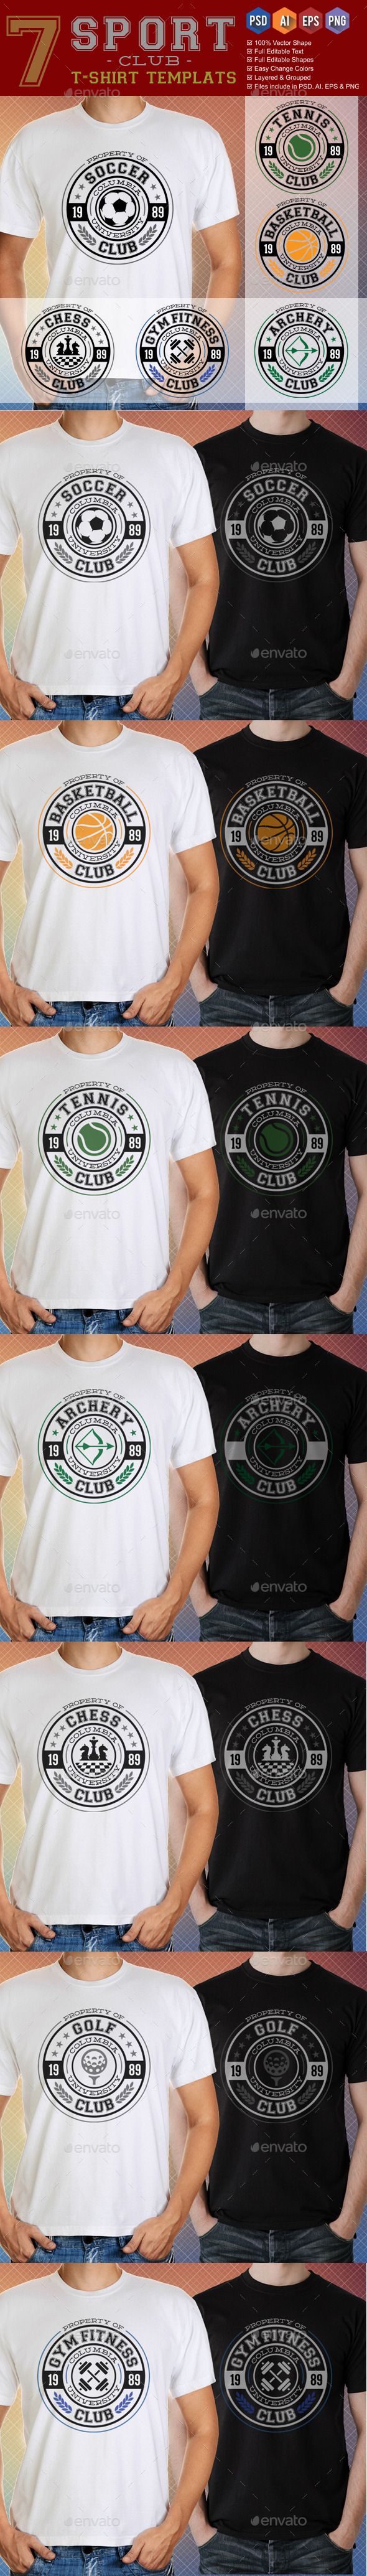 GraphicRiver 7 Sport Club T-Shirt Templates 9223251